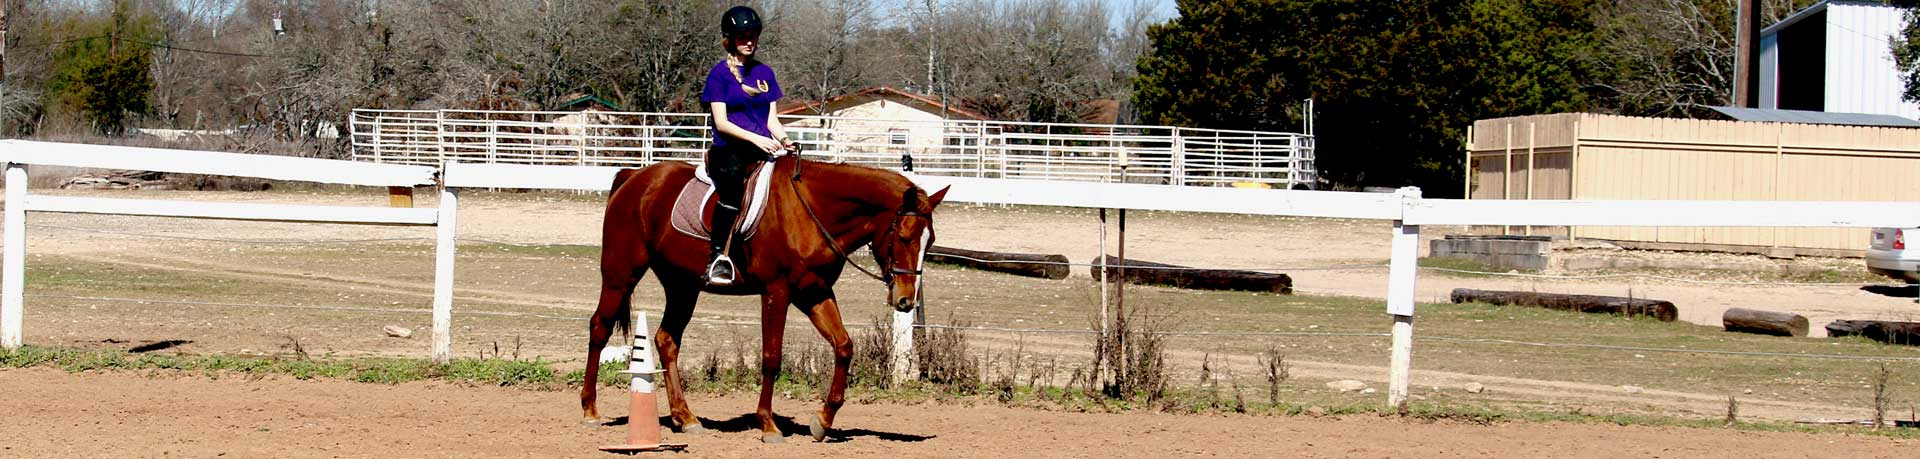 Private Lessons and UT Informal Classes - Bear Creek Stables